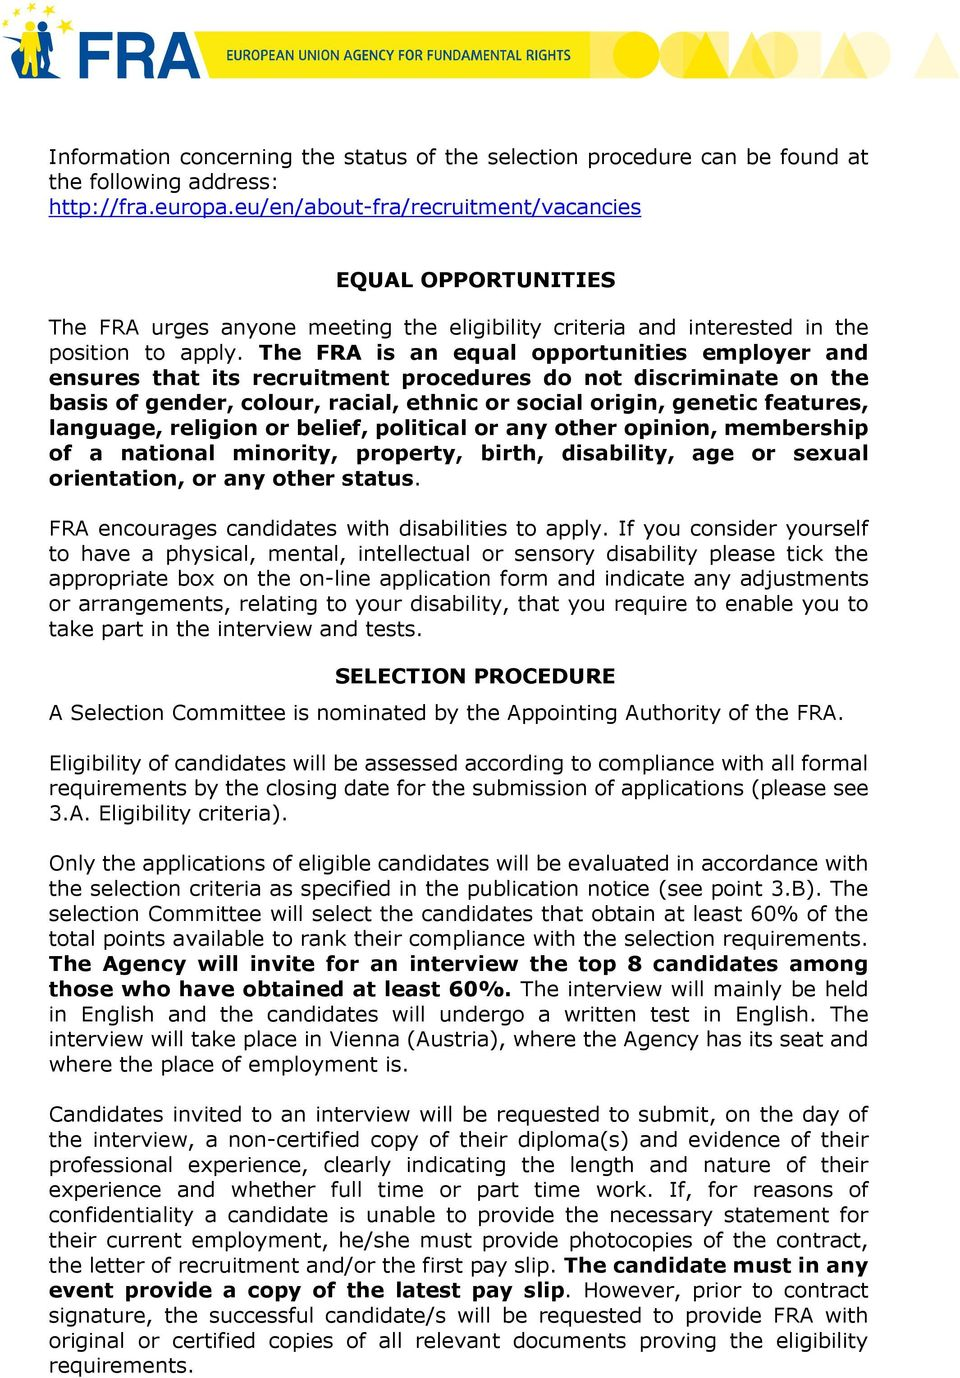 The FRA is an equal opportunities employer and ensures that its recruitment procedures do not discriminate on the basis of gender, colour, racial, ethnic or social origin, genetic features, language,